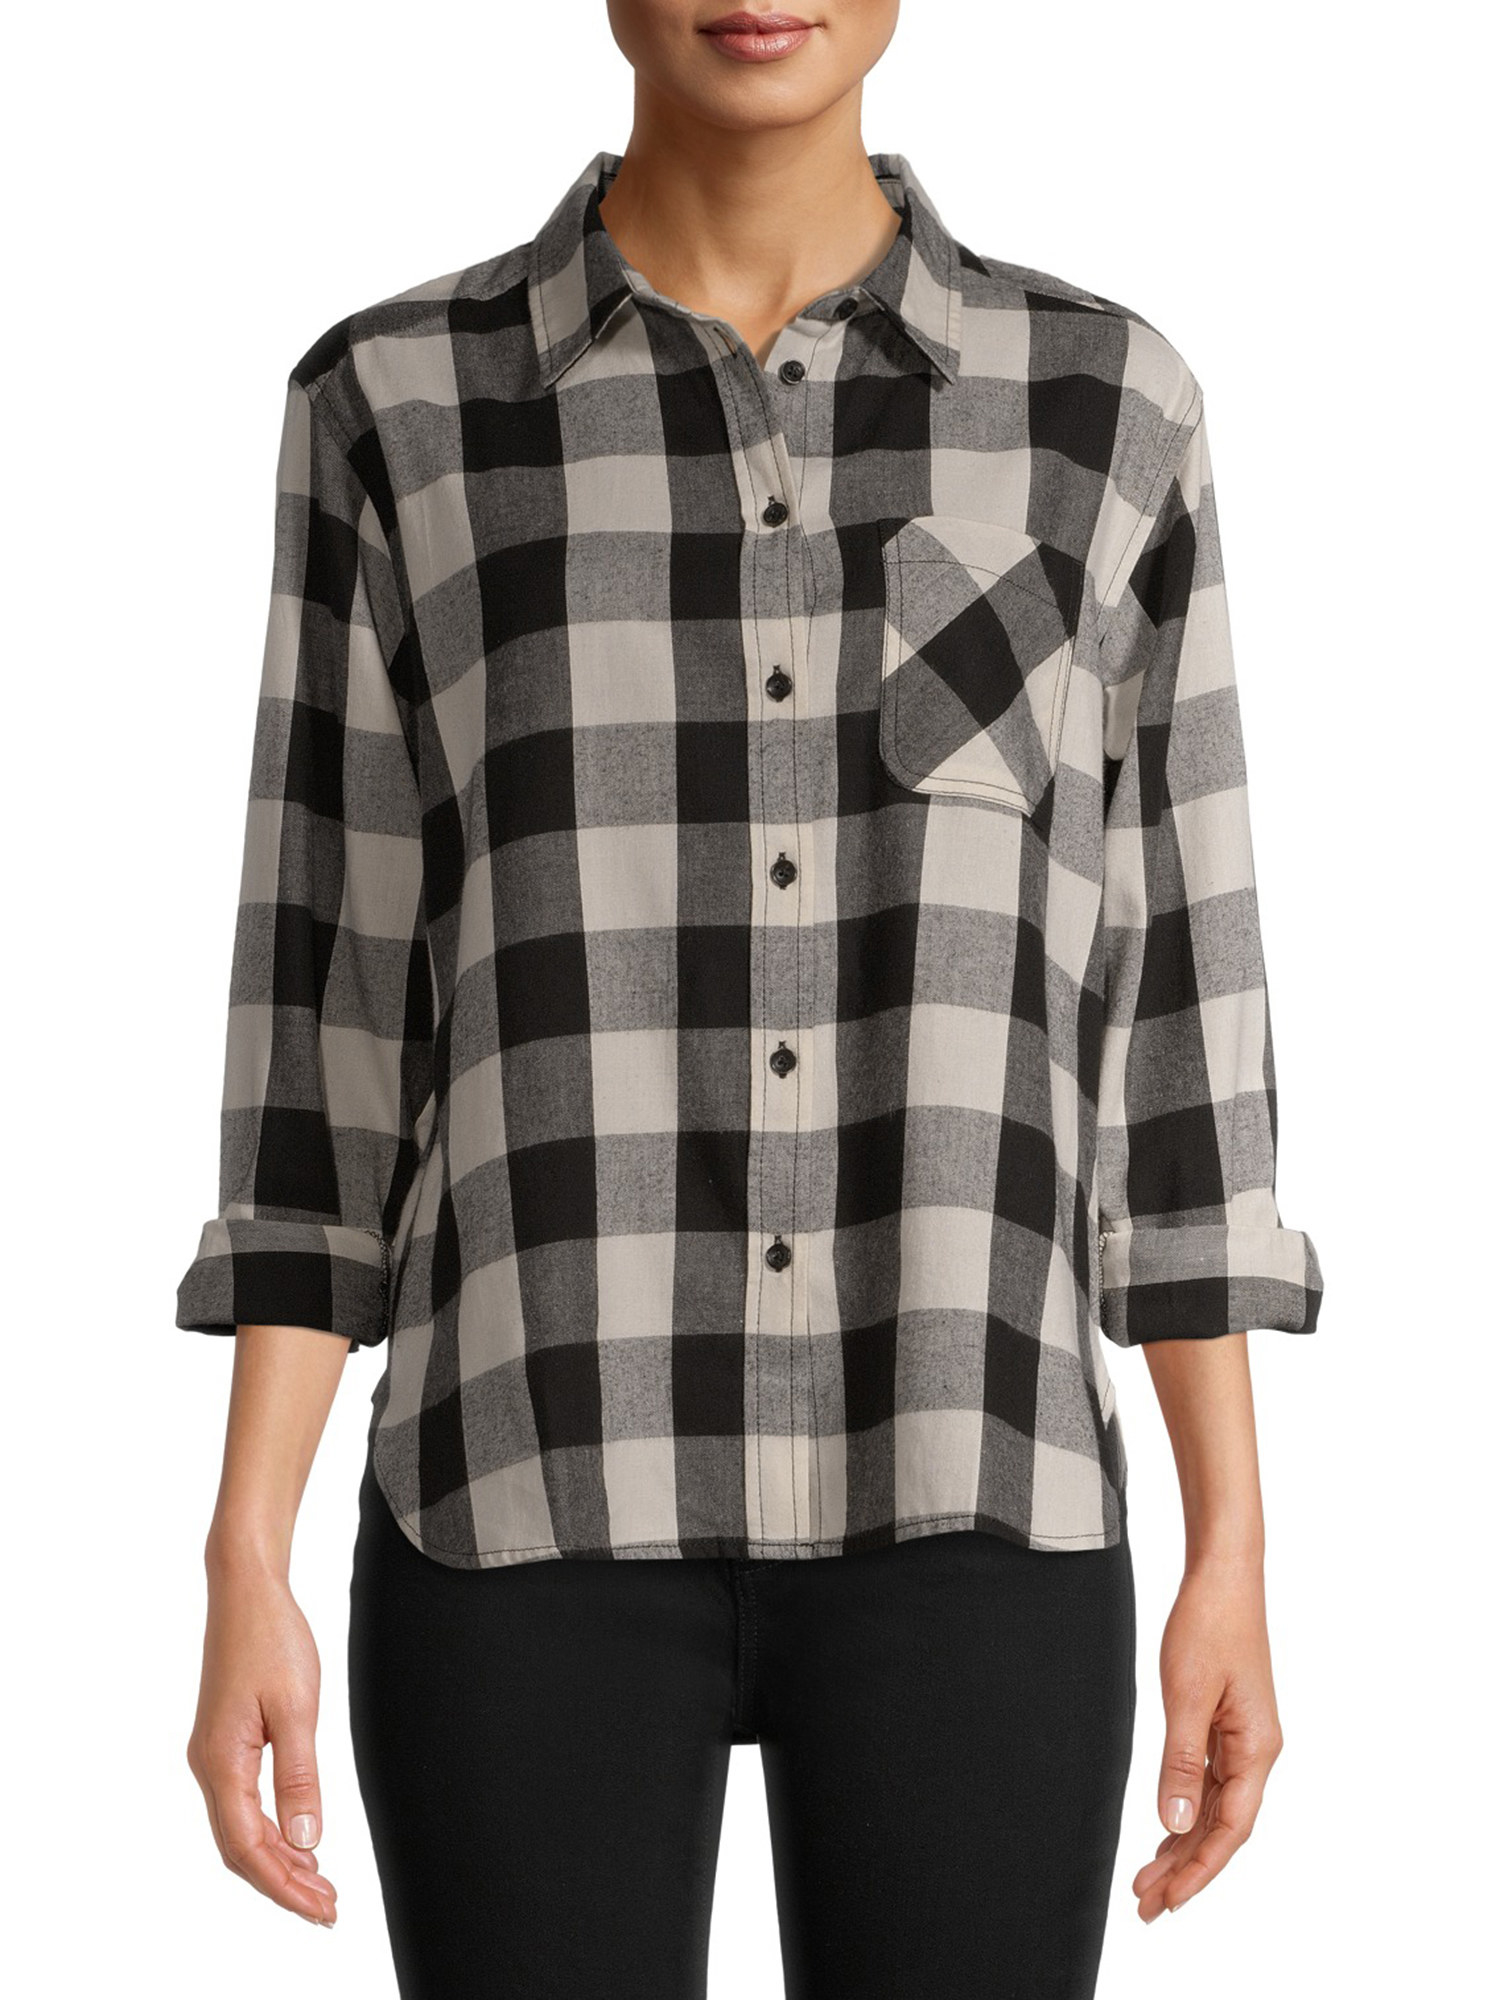 The black and white plaid blouse